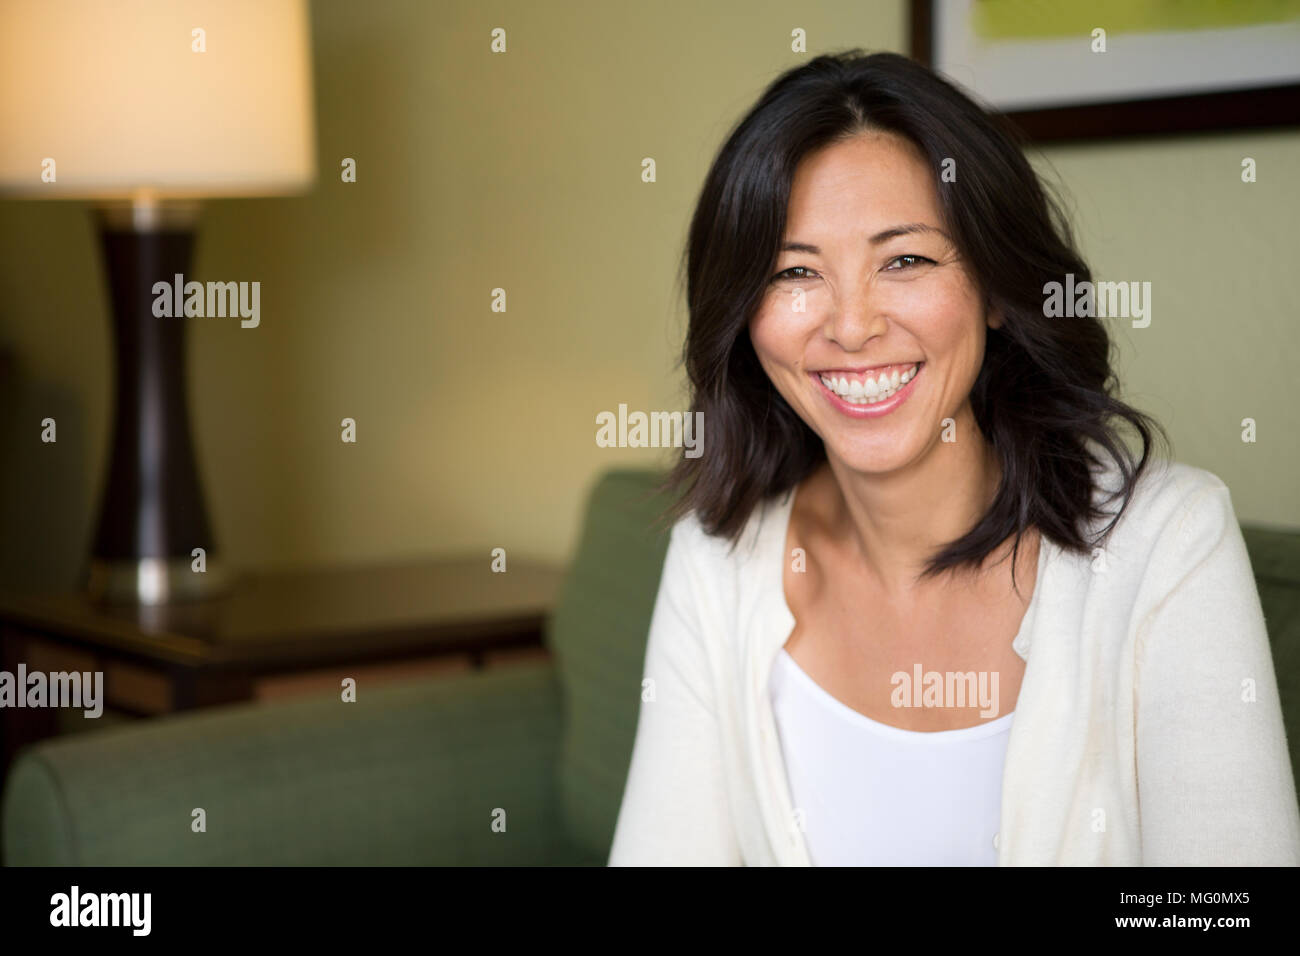 Portrait of an Asian woman smiling. Stock Photo